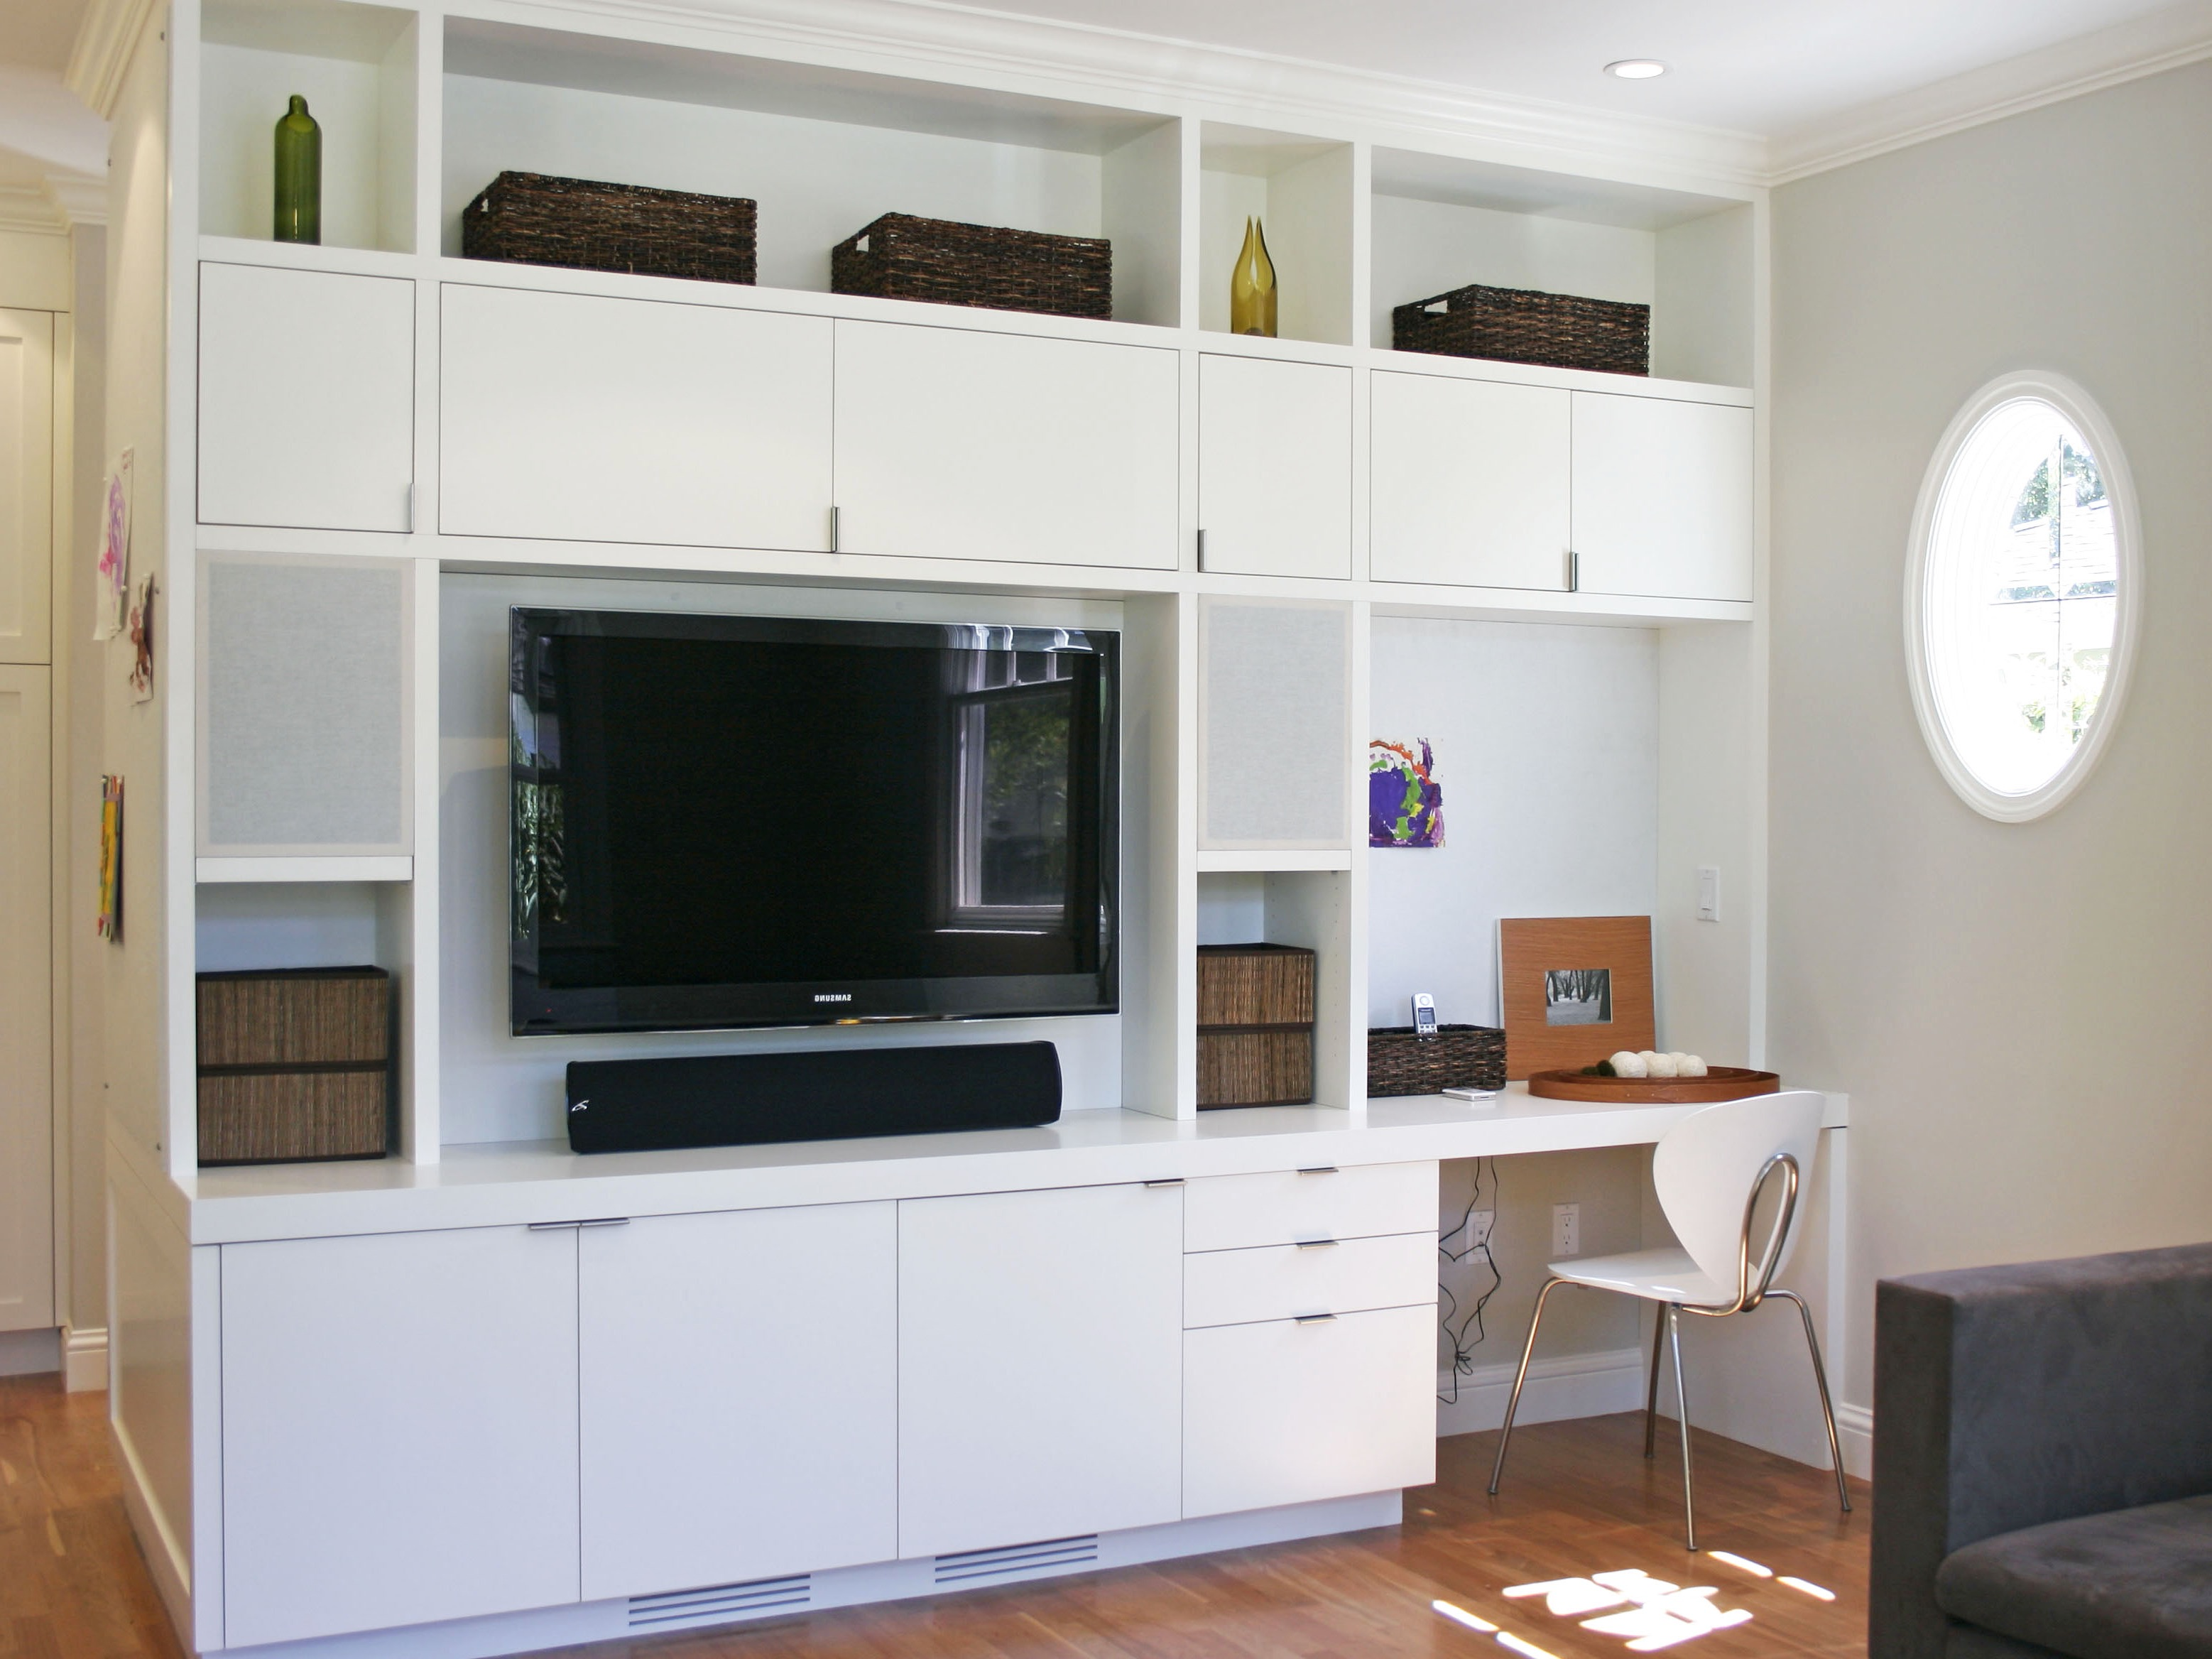 Contemporary Custom TV Showcase With Built In Desk And Cabinets (Image 4 of 16)